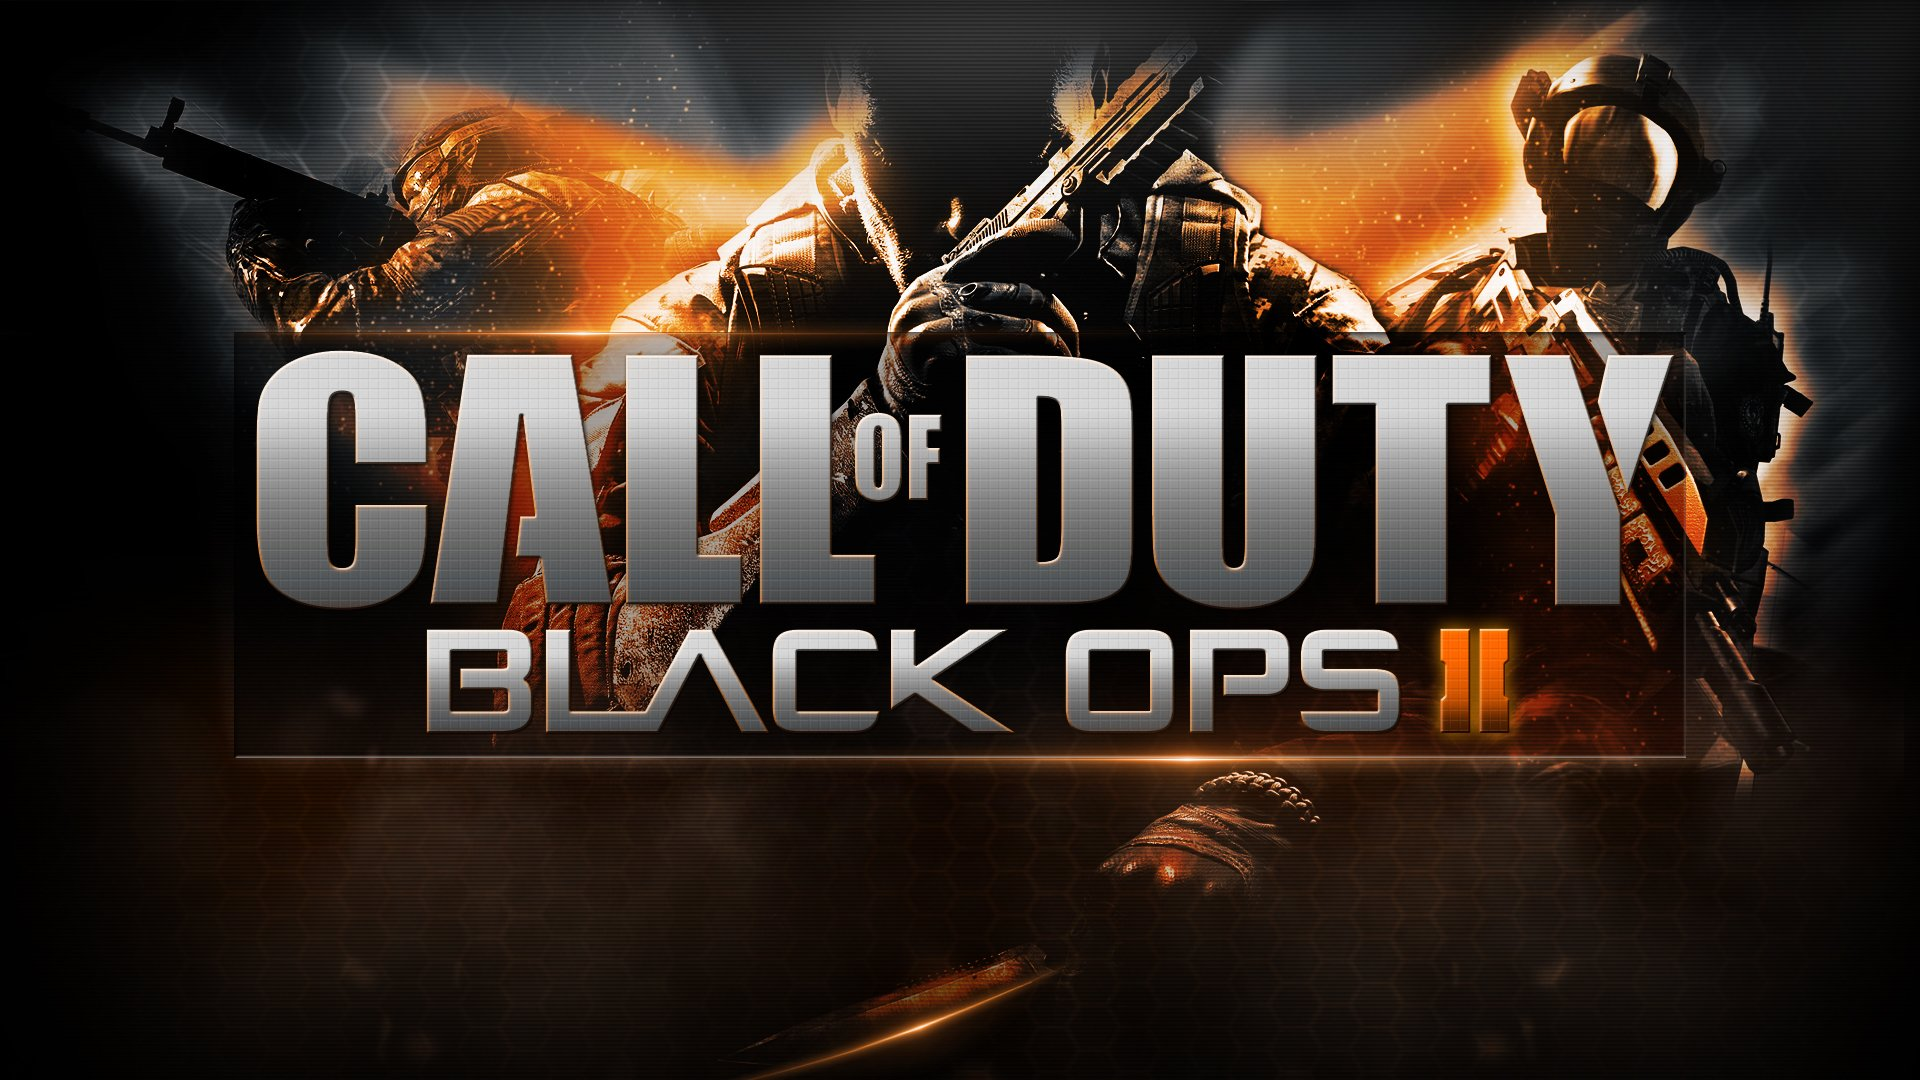 48 Black Ops 2 Wallpaper On Wallpapersafari